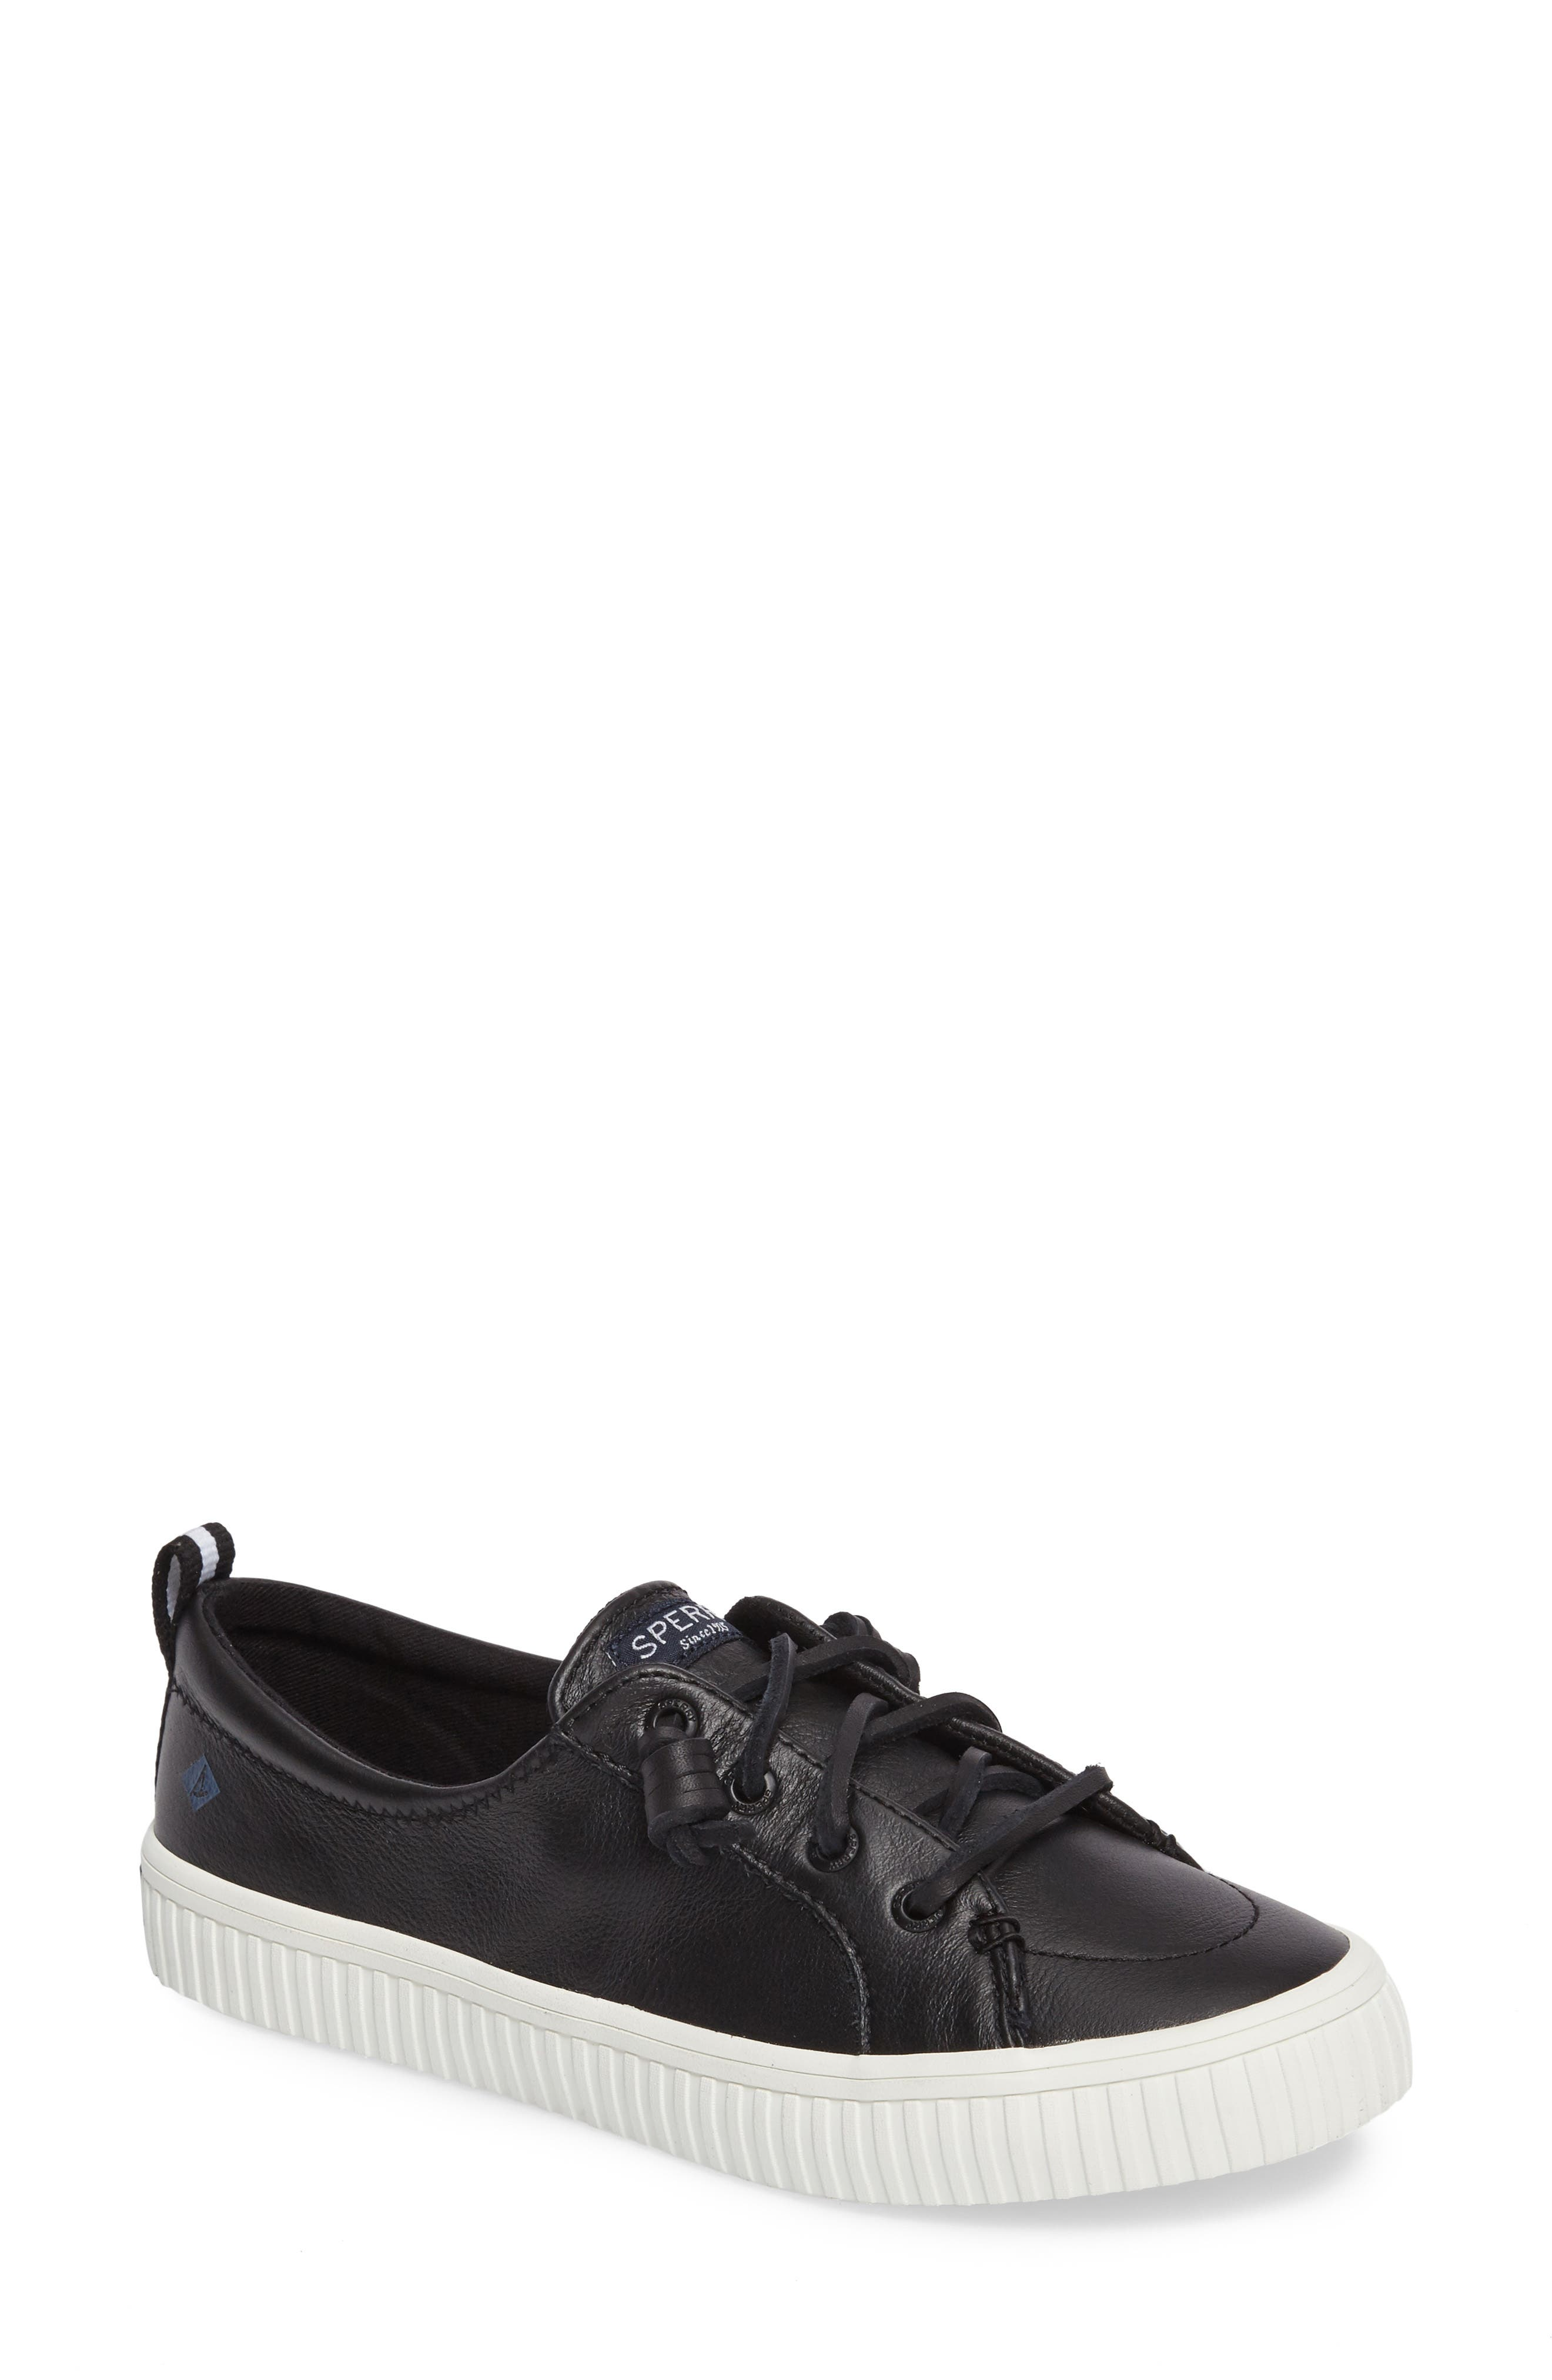 Crest Vibe Creeper Sneaker,                             Main thumbnail 1, color,                             Black Leather